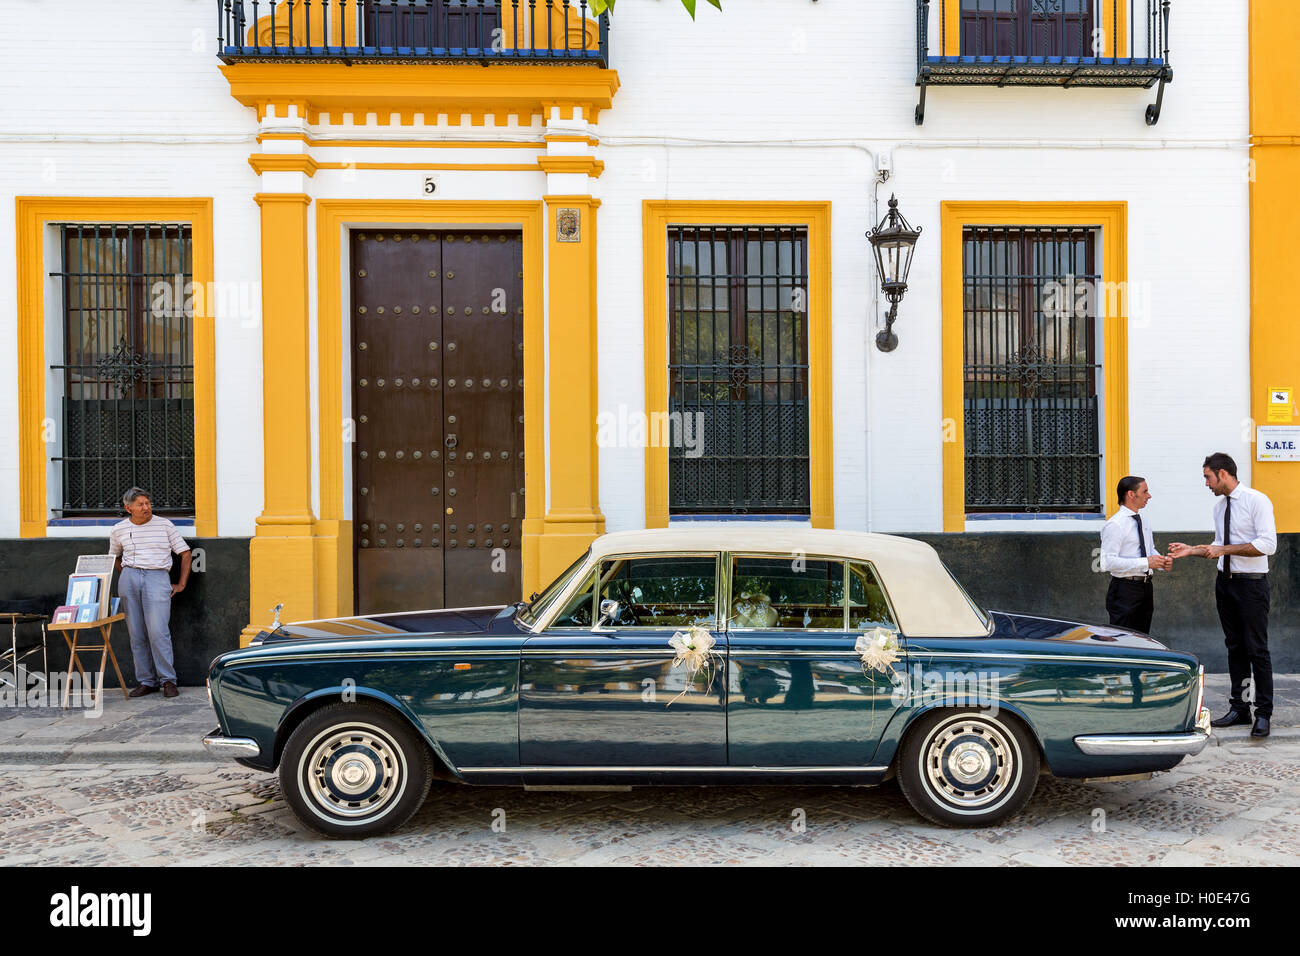 Street scene and a old car in Seville, Andalusia, Span - Stock Image